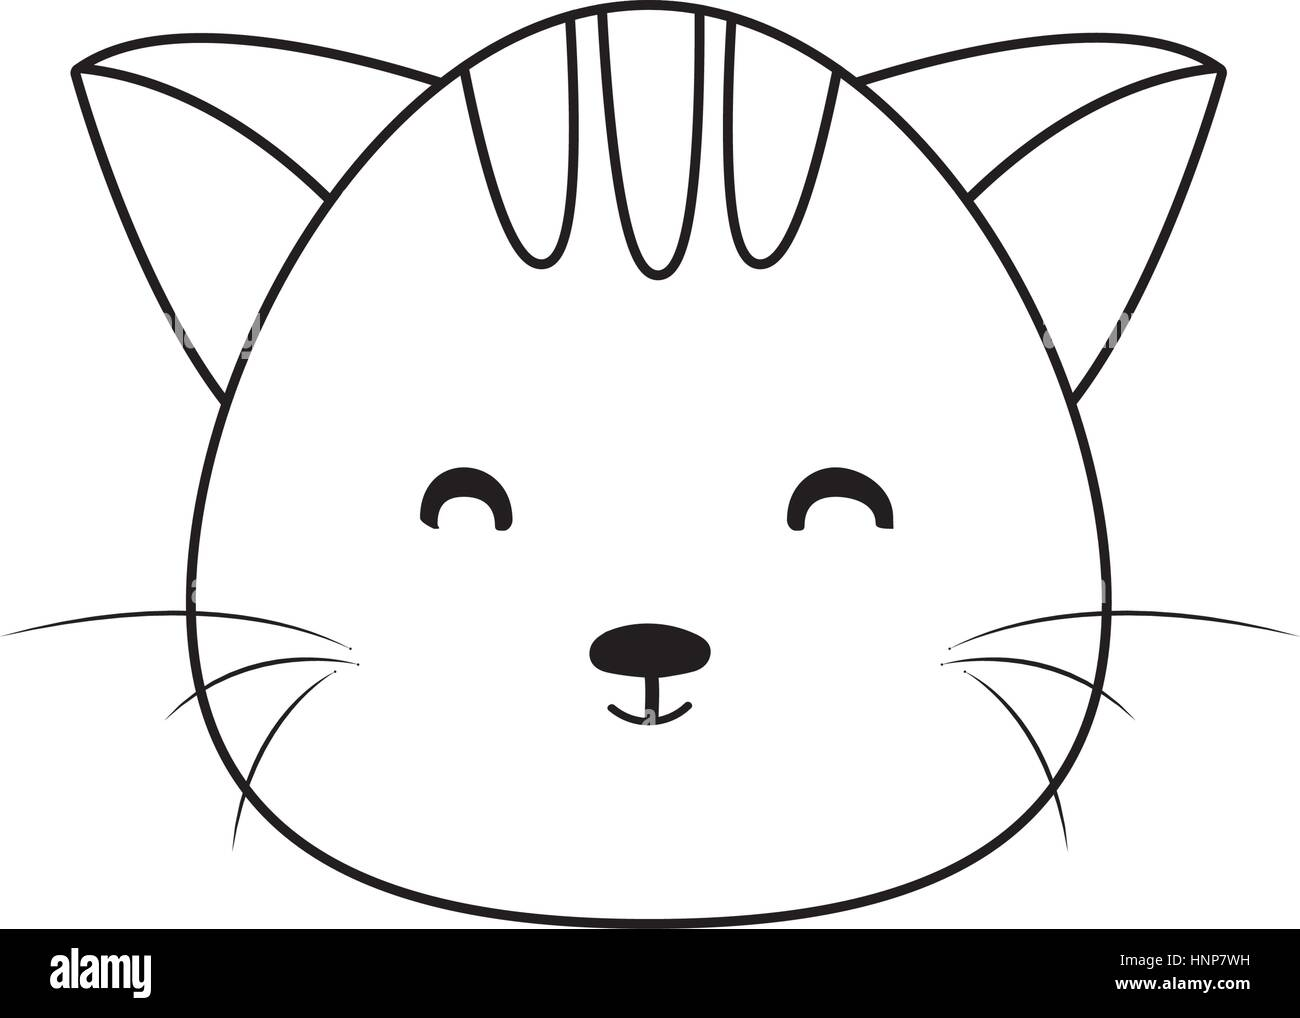 Uncategorized Cat Drawing Face cat drawing face stock vector art illustration image face